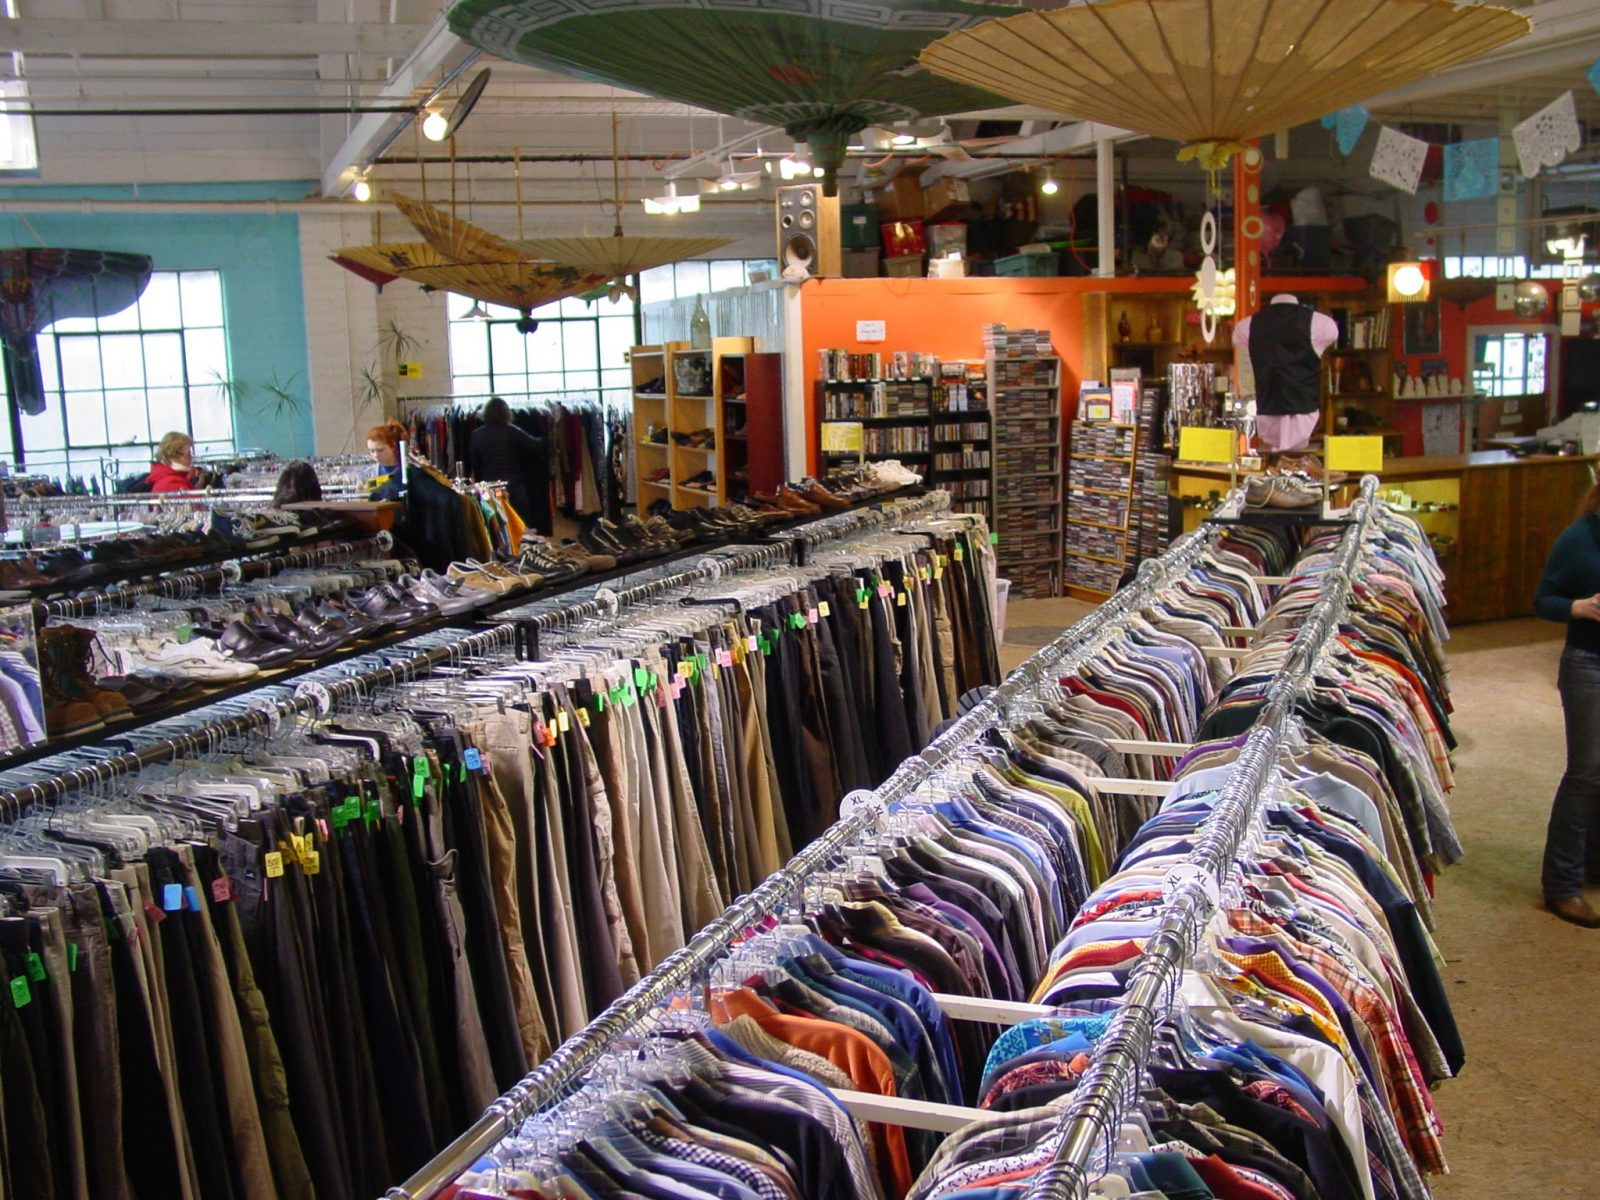 6 Of The Best Thrift Stores In San Diego Theurbanrealist